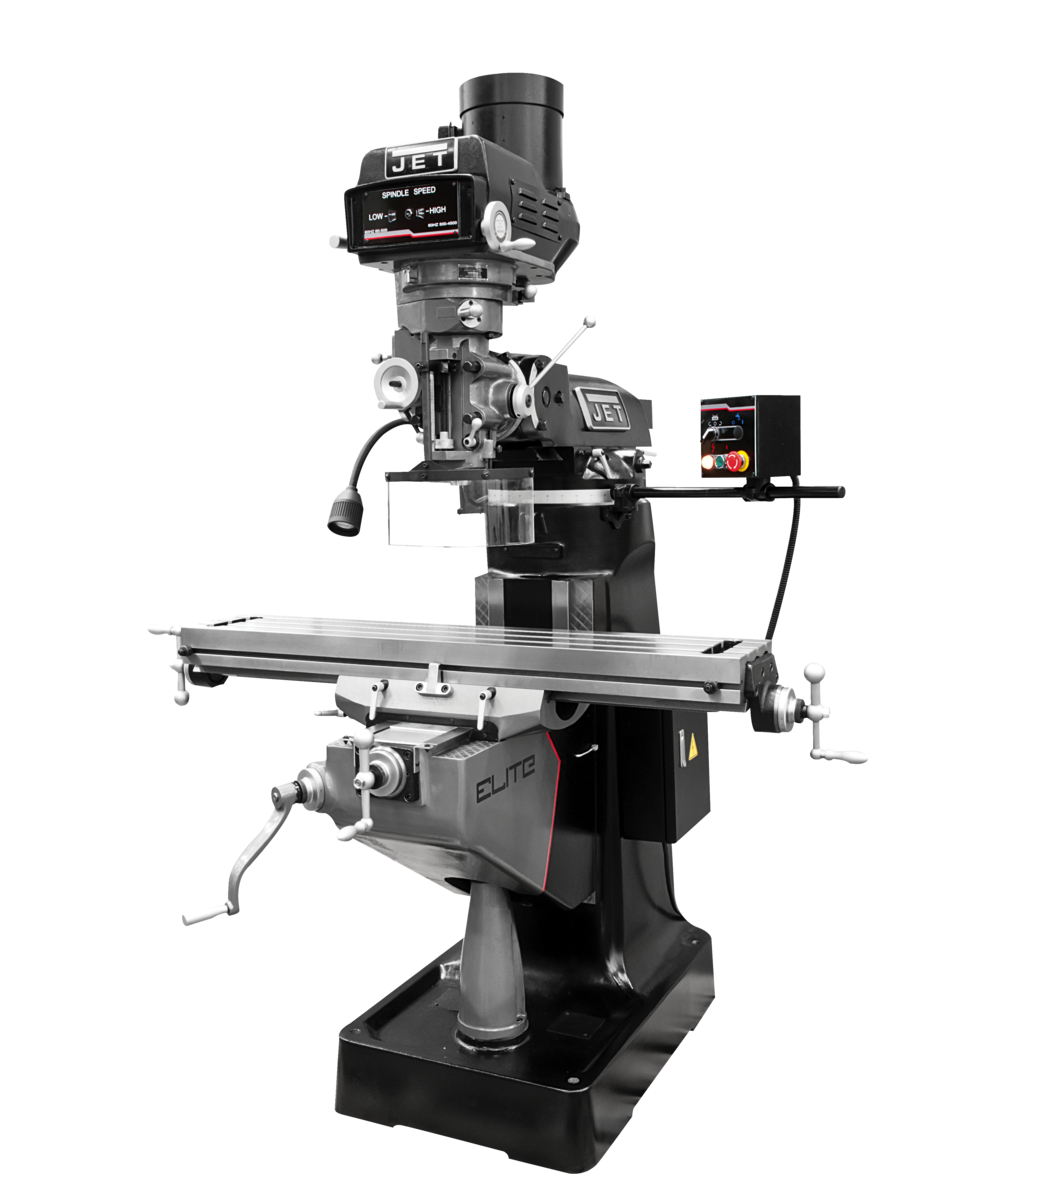 ETM-949 Mill with 3-Axis ACU-RITE 303 (Quill) DRO and Servo X, Y-Axis Powerfeeds